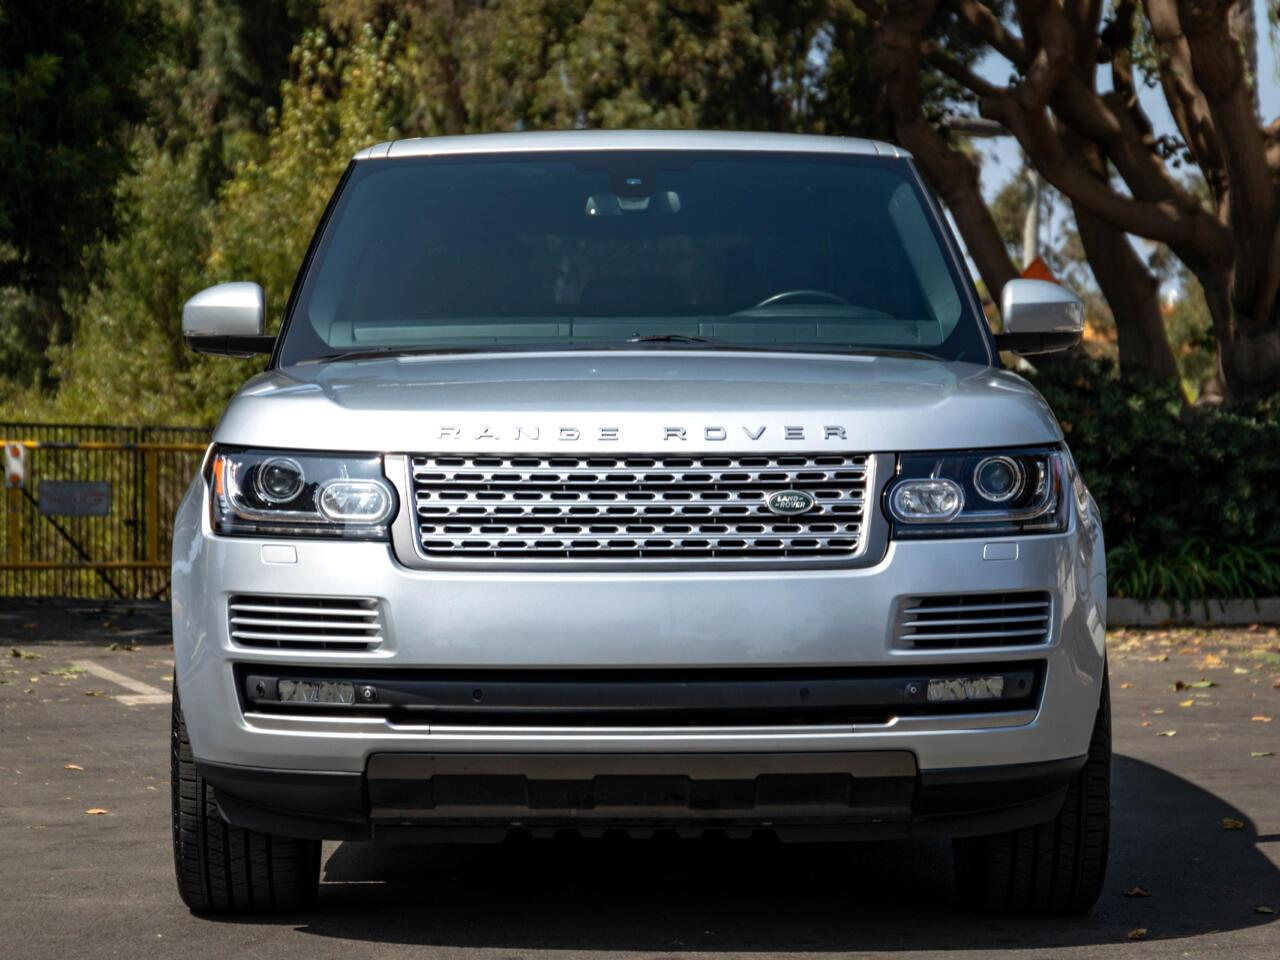 2015 Land Rover Range Rover (CC-1377993) for sale in Marina Del Rey, California